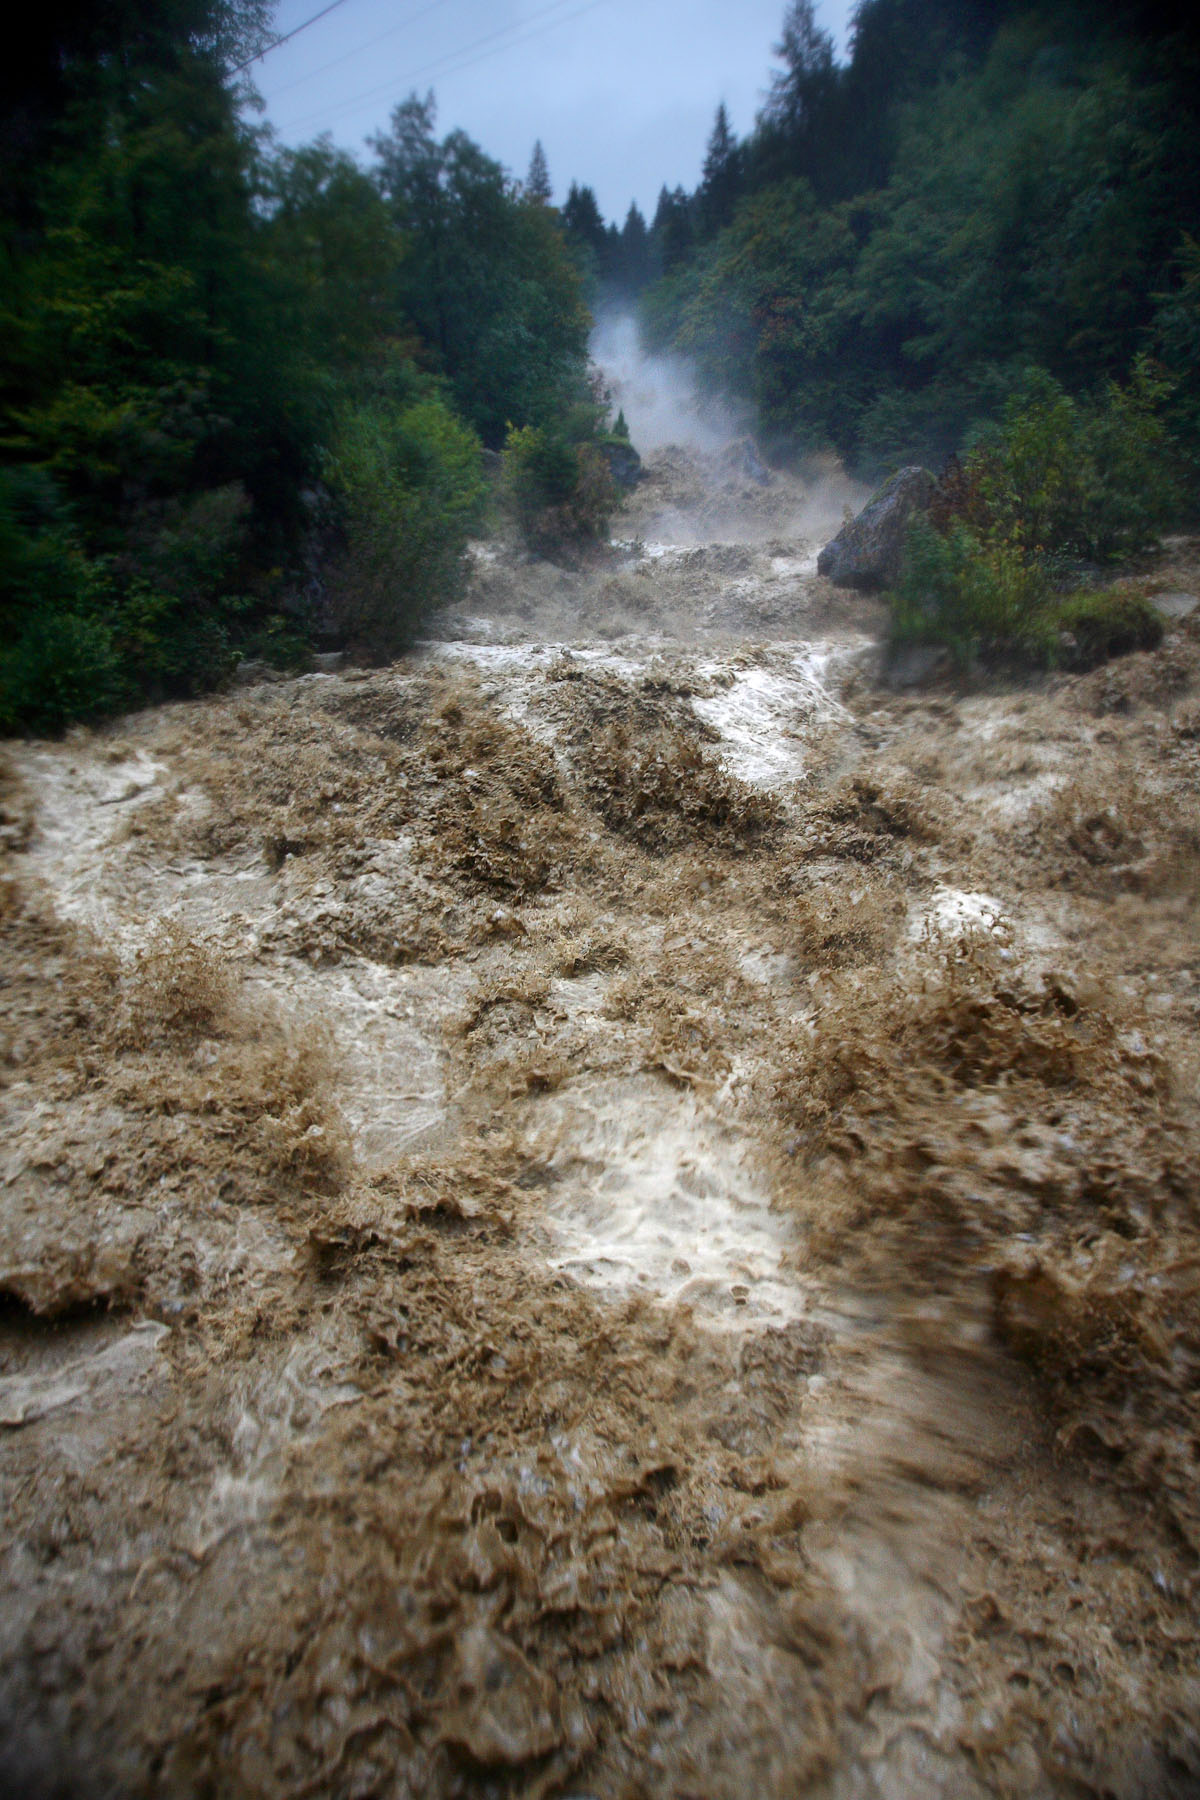 The river Tržiška Bistrica rampages through the Dovžan gorge above Tržič, Slovenia, on 18th September, the day of the catastrophic floods.